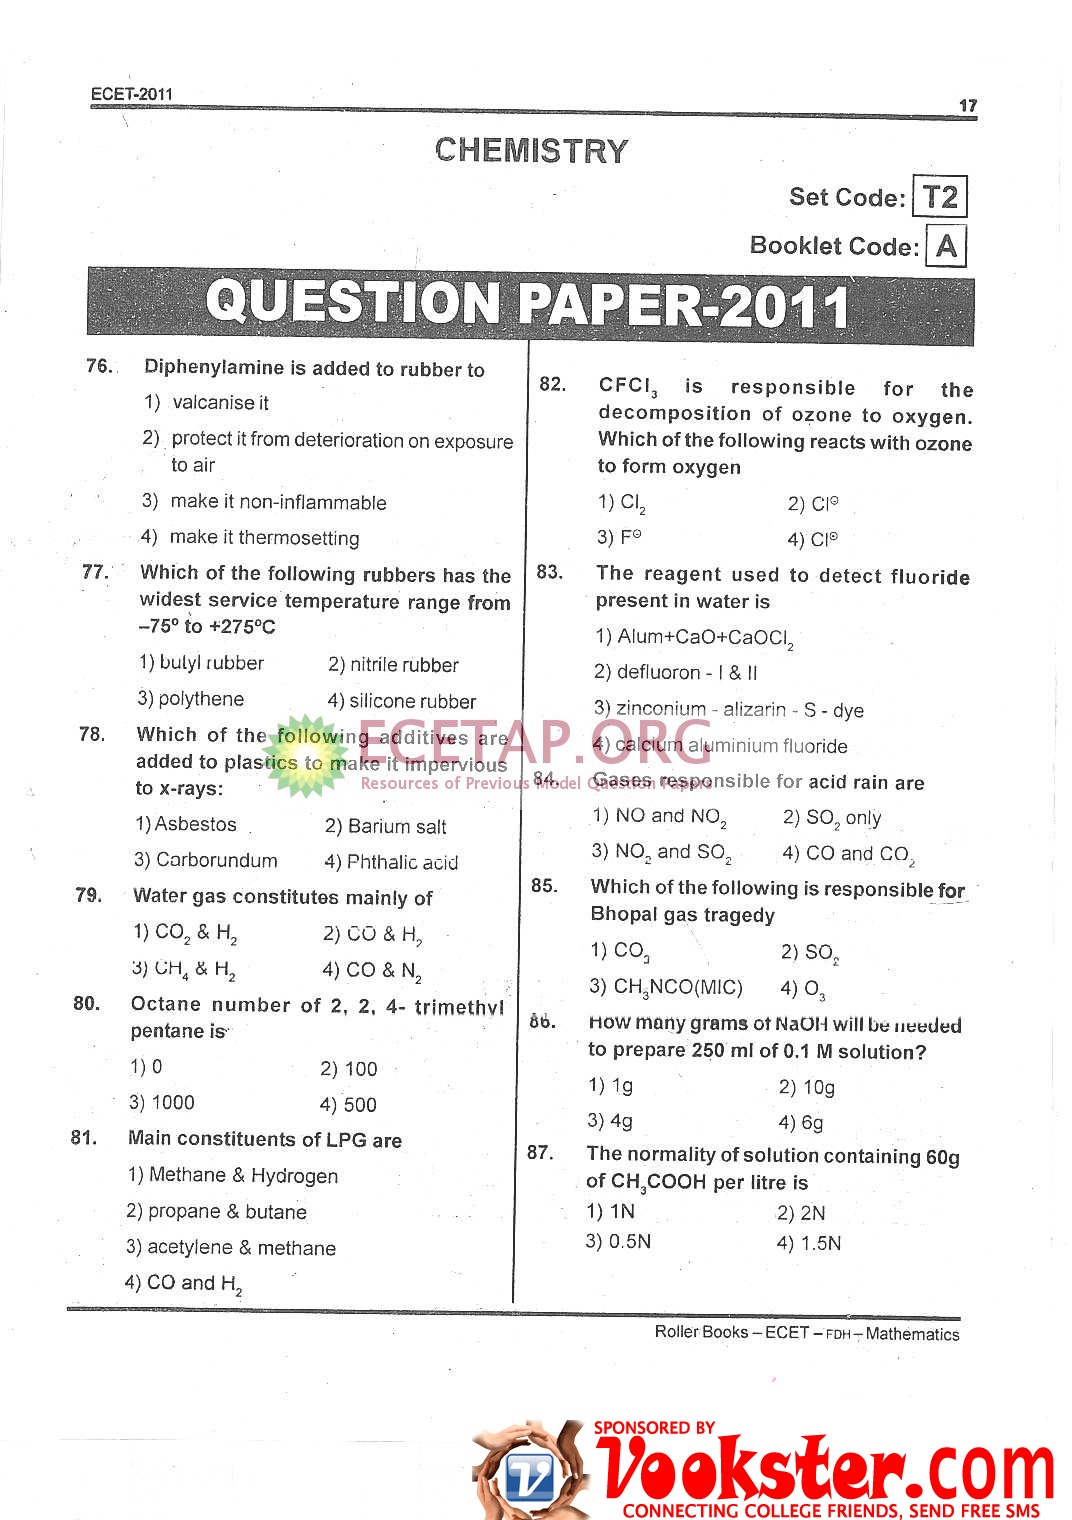 ecetap 2016 previous model papers question papers eee ece sce ecet mathematics chemistry physics model papers